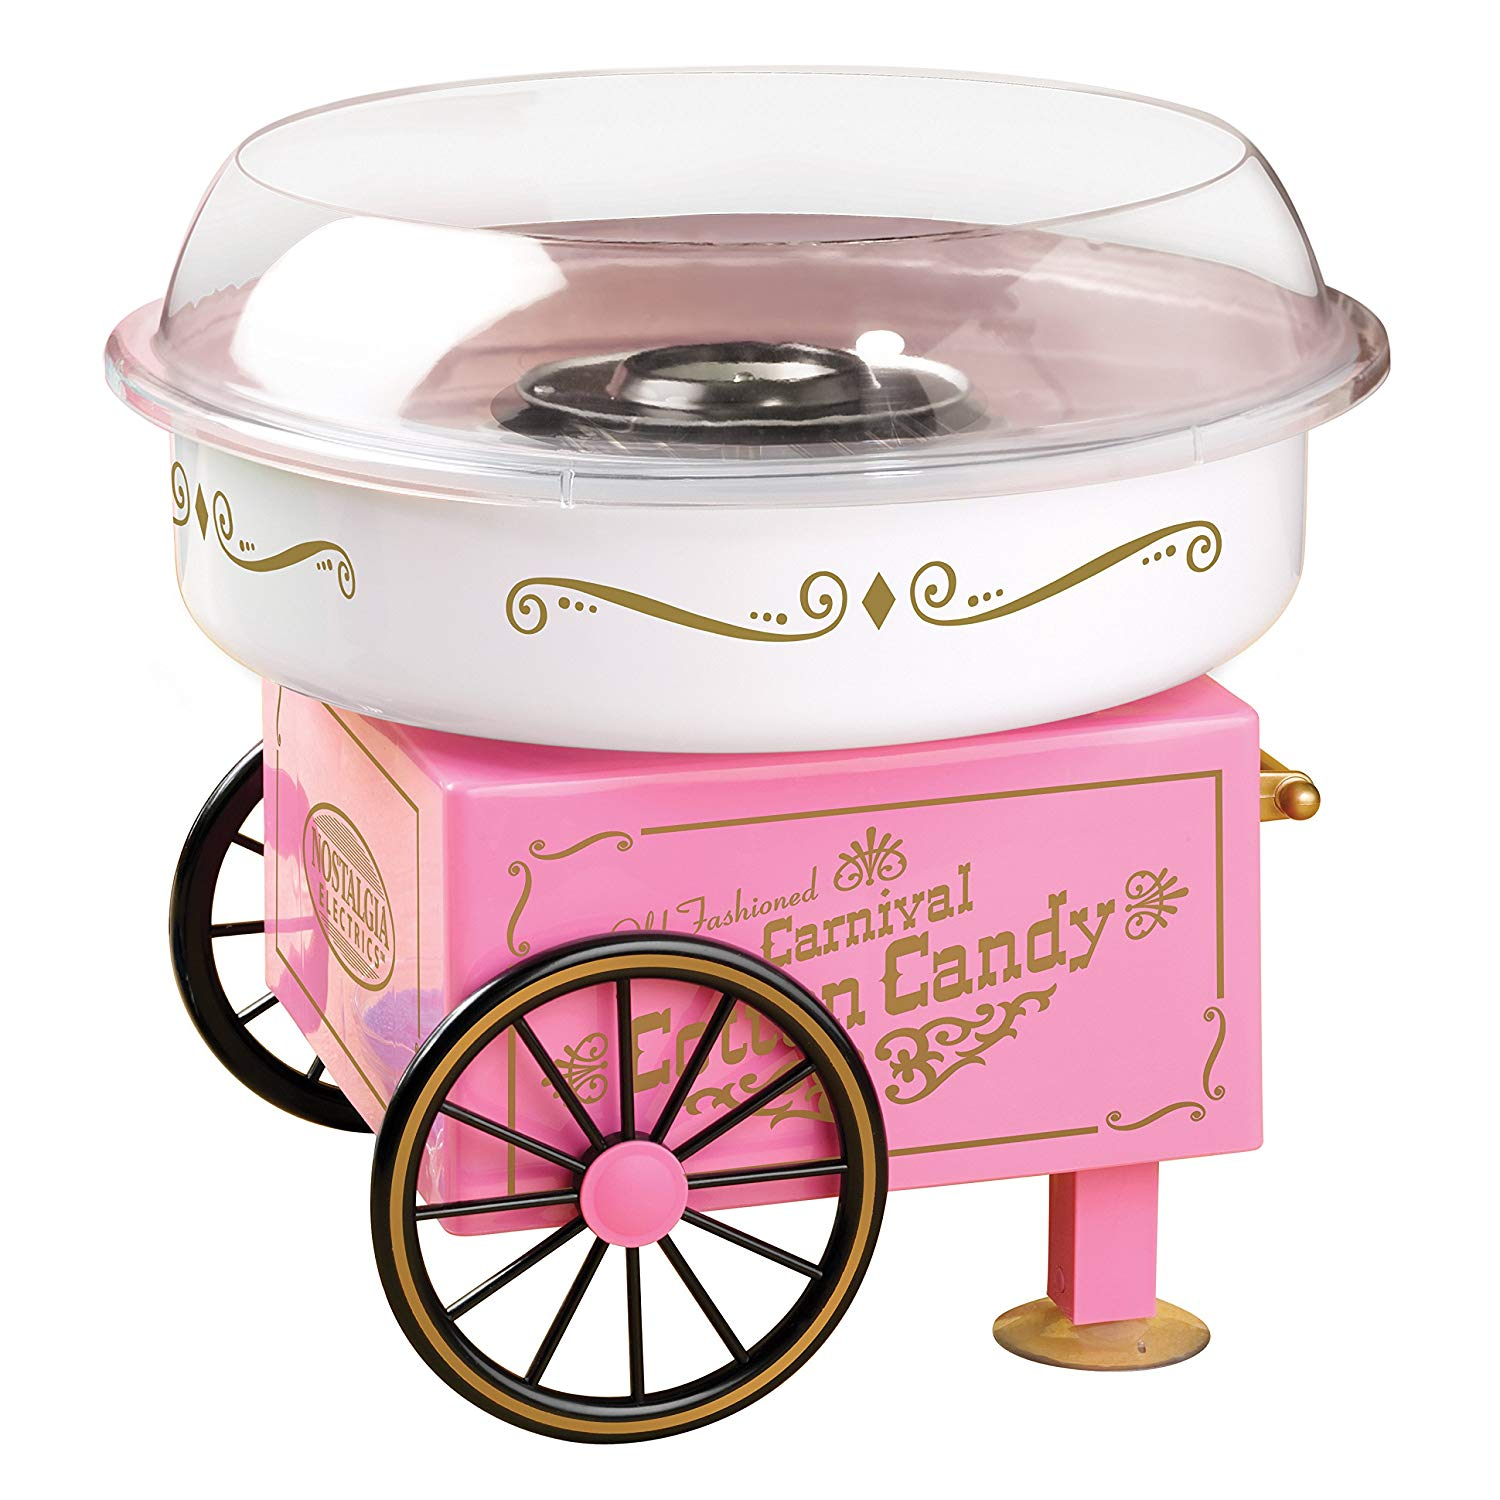 Nostalgia Electrics Vintage Hard and Sugar-Free Candy Cotton Candy Maker, Cotton Candy Machine